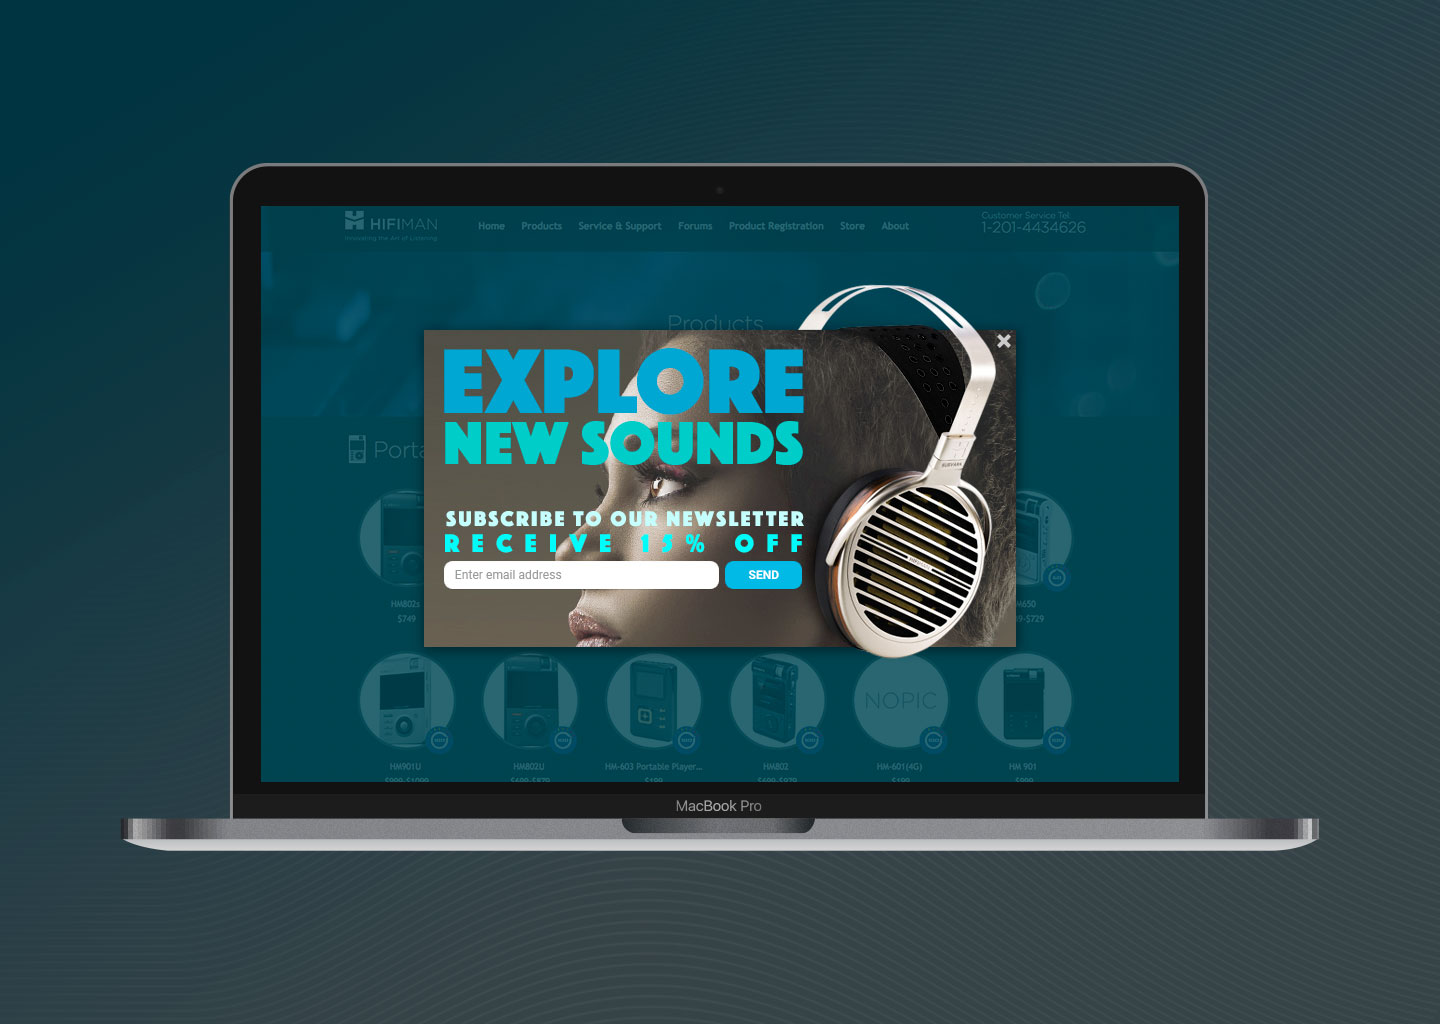 HiFiMan - Pop-up ad design